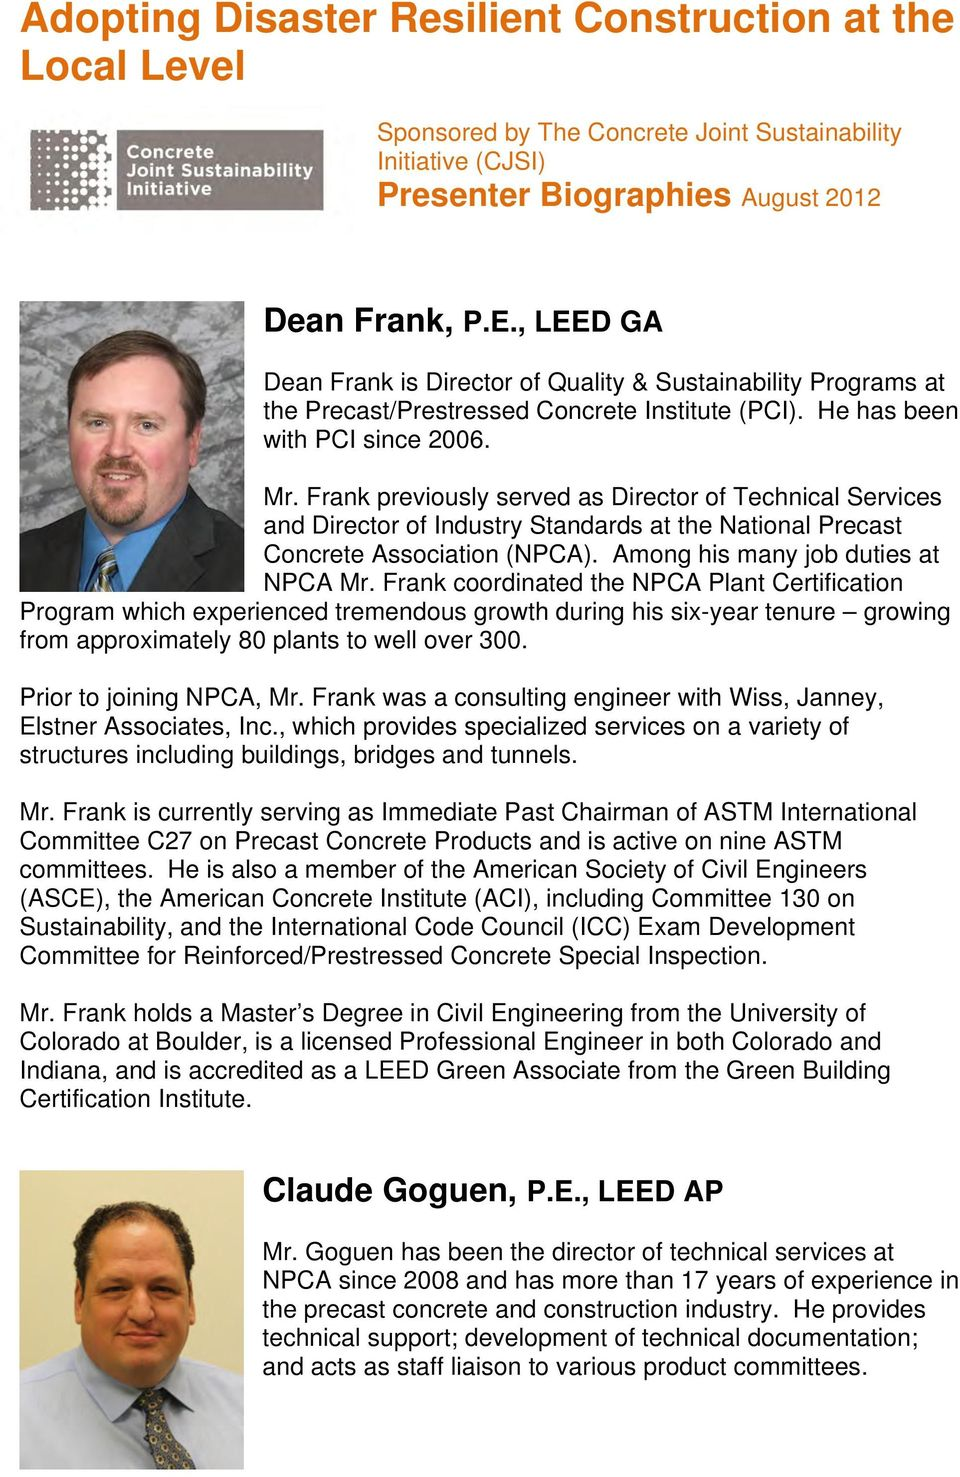 Frank previously served as Director of Technical Services and Director of Industry Standards at the National Precast Concrete Association (NPCA). Among his many job duties at NPCA Mr.